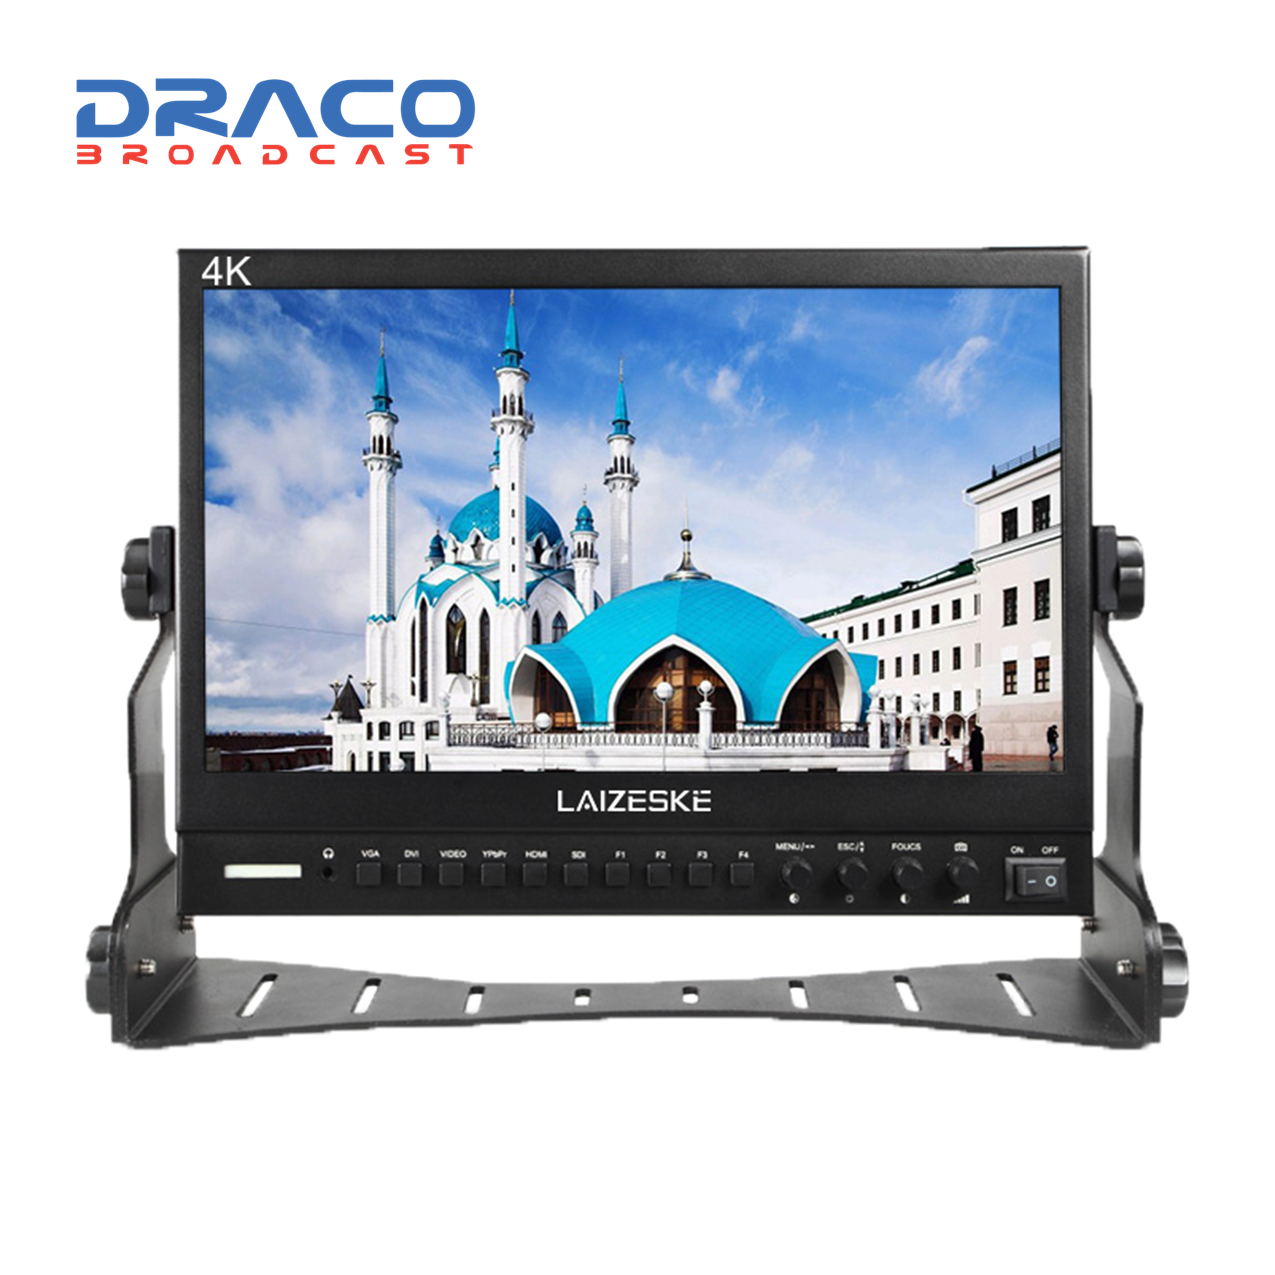 Laizeske 13.3″ Full HD IPS Multiformat Pro HDMI Broadcast LCD Monitor